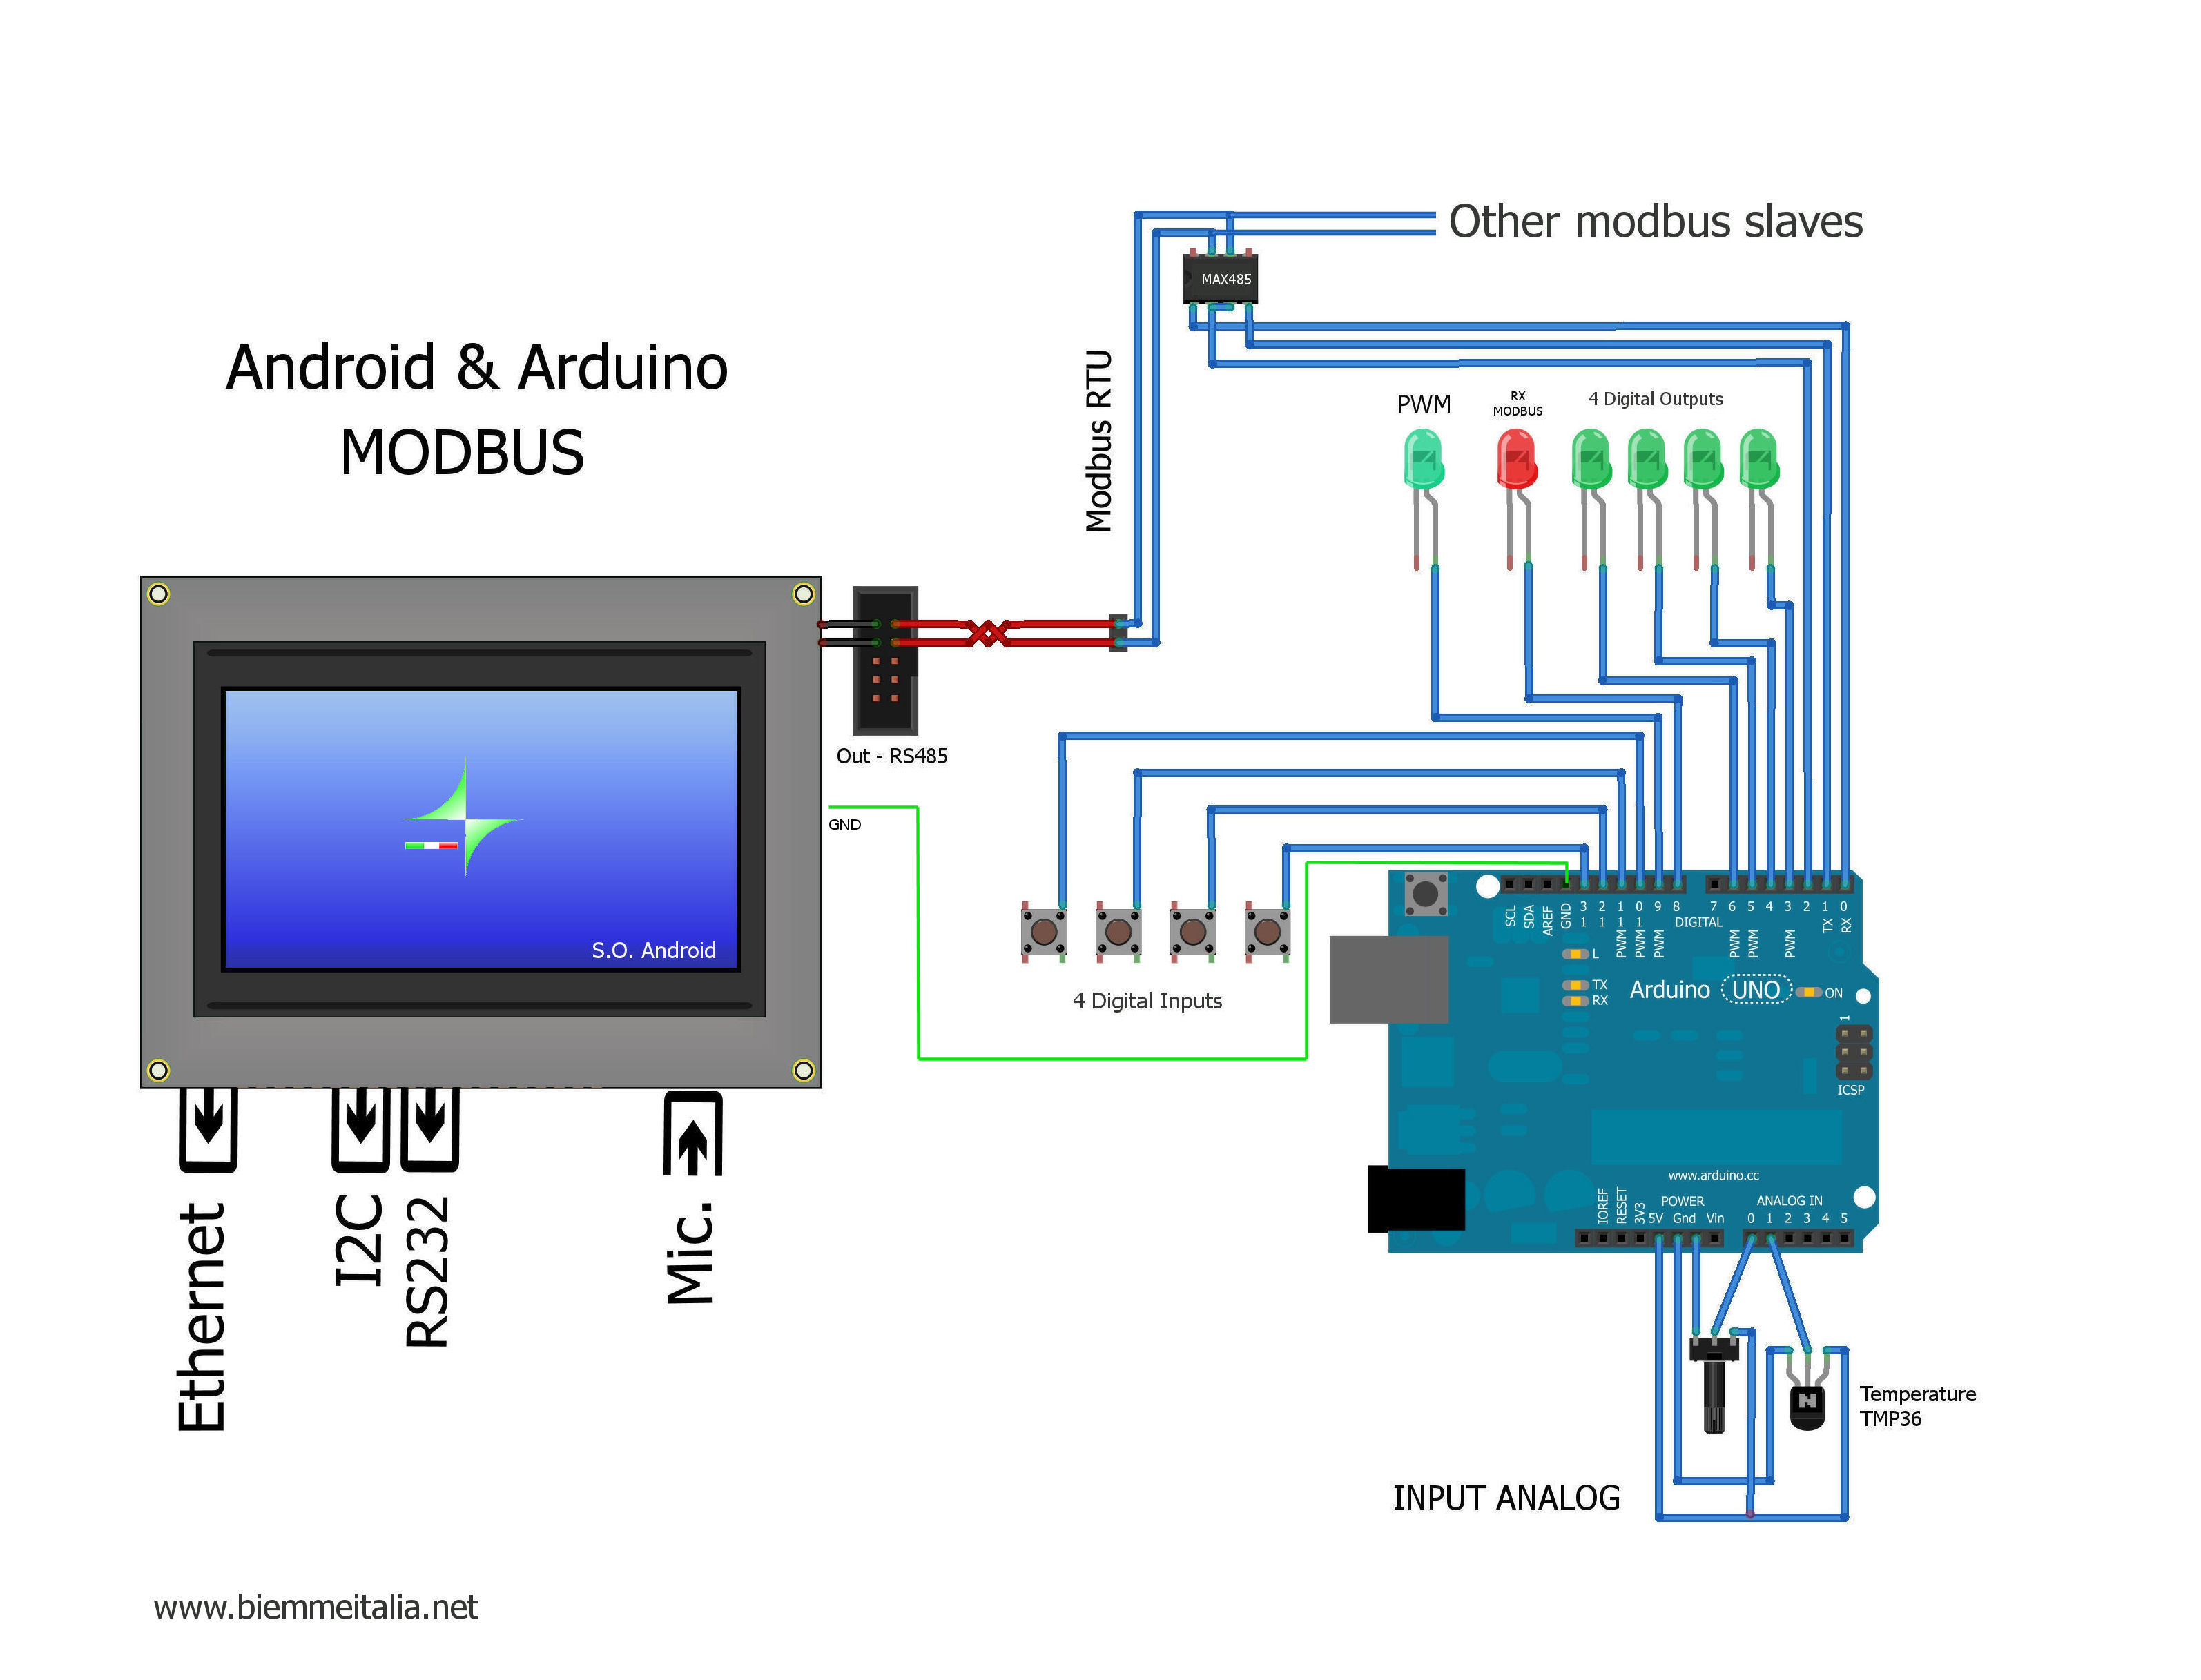 android arduino communication via modbus rs485 rh biemmeitalia net Modbus RS485 Wiring-Diagram a B Modbus RS485 2Wire Wiring-Diagram